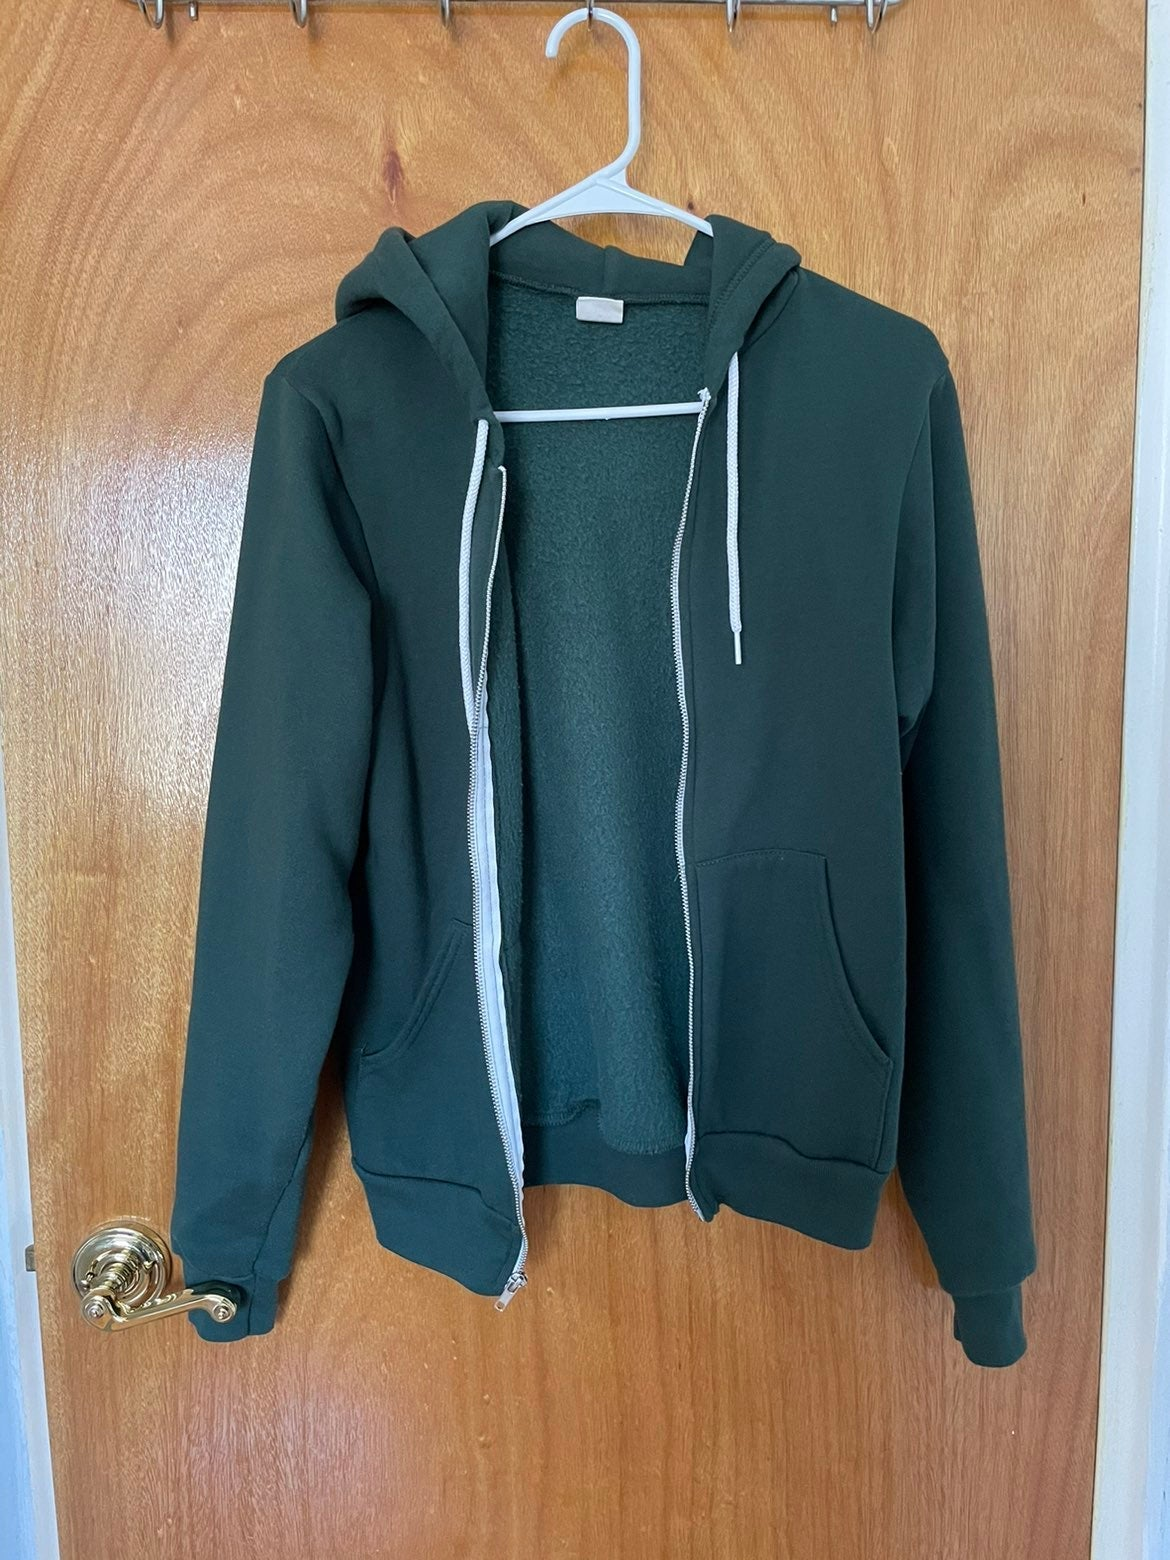 Forest Green American Apparel Hoodie